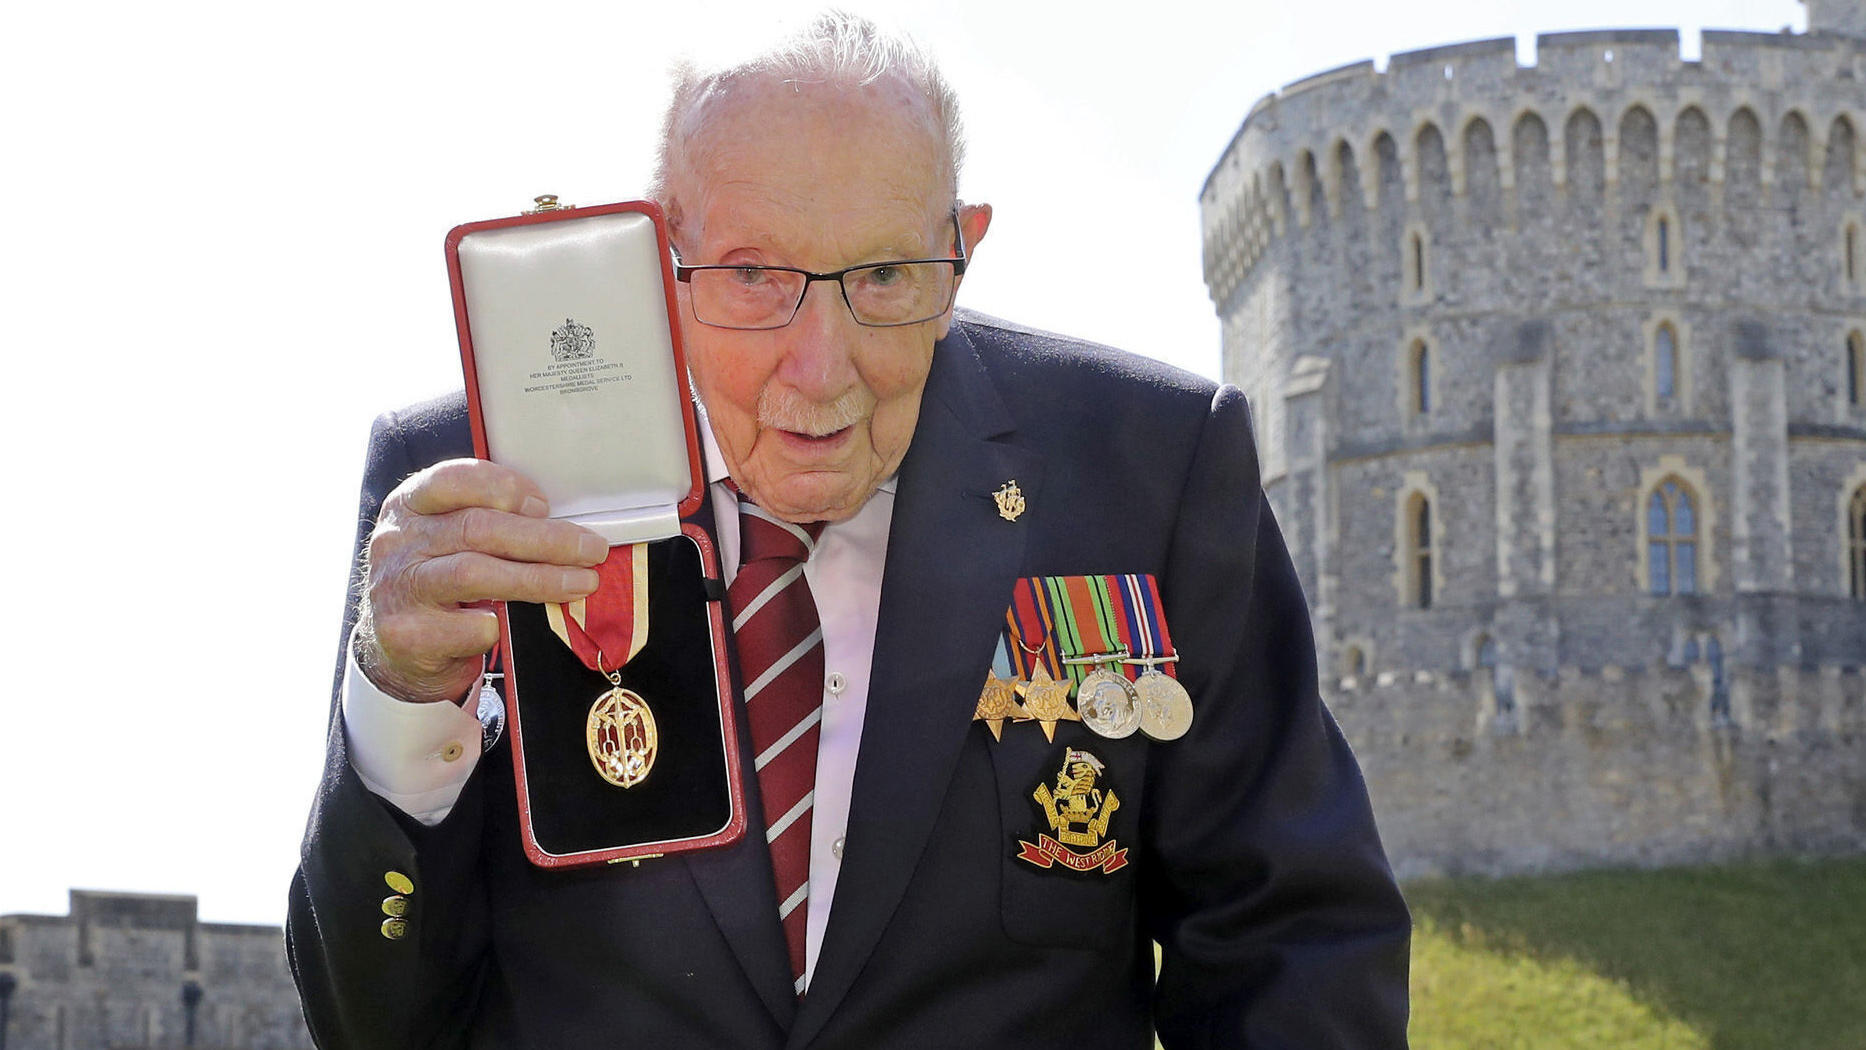 FILE - In this Friday, July 17, 2020 file photo, Captain Sir Thomas Moore poses for the media after receiving his knighthood from Britain's Queen Elizabeth, during a ceremony at Windsor Castle in Windsor, England. Tom Moore, the 100-year-old World Wa